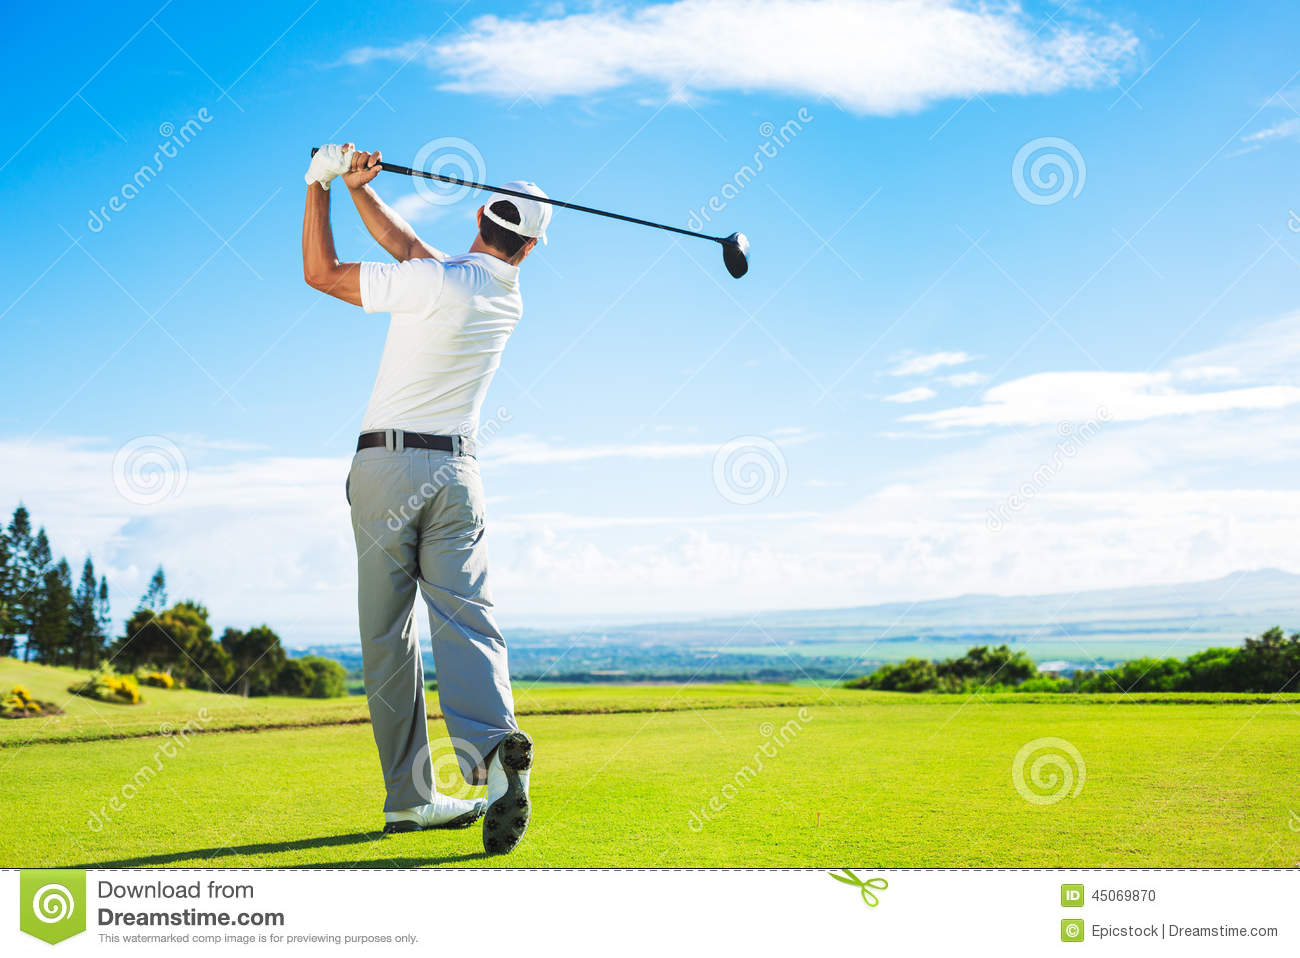 Man Playing Golf Stock Photo - Image: 45069870 Golf Ball On Tee Clipart